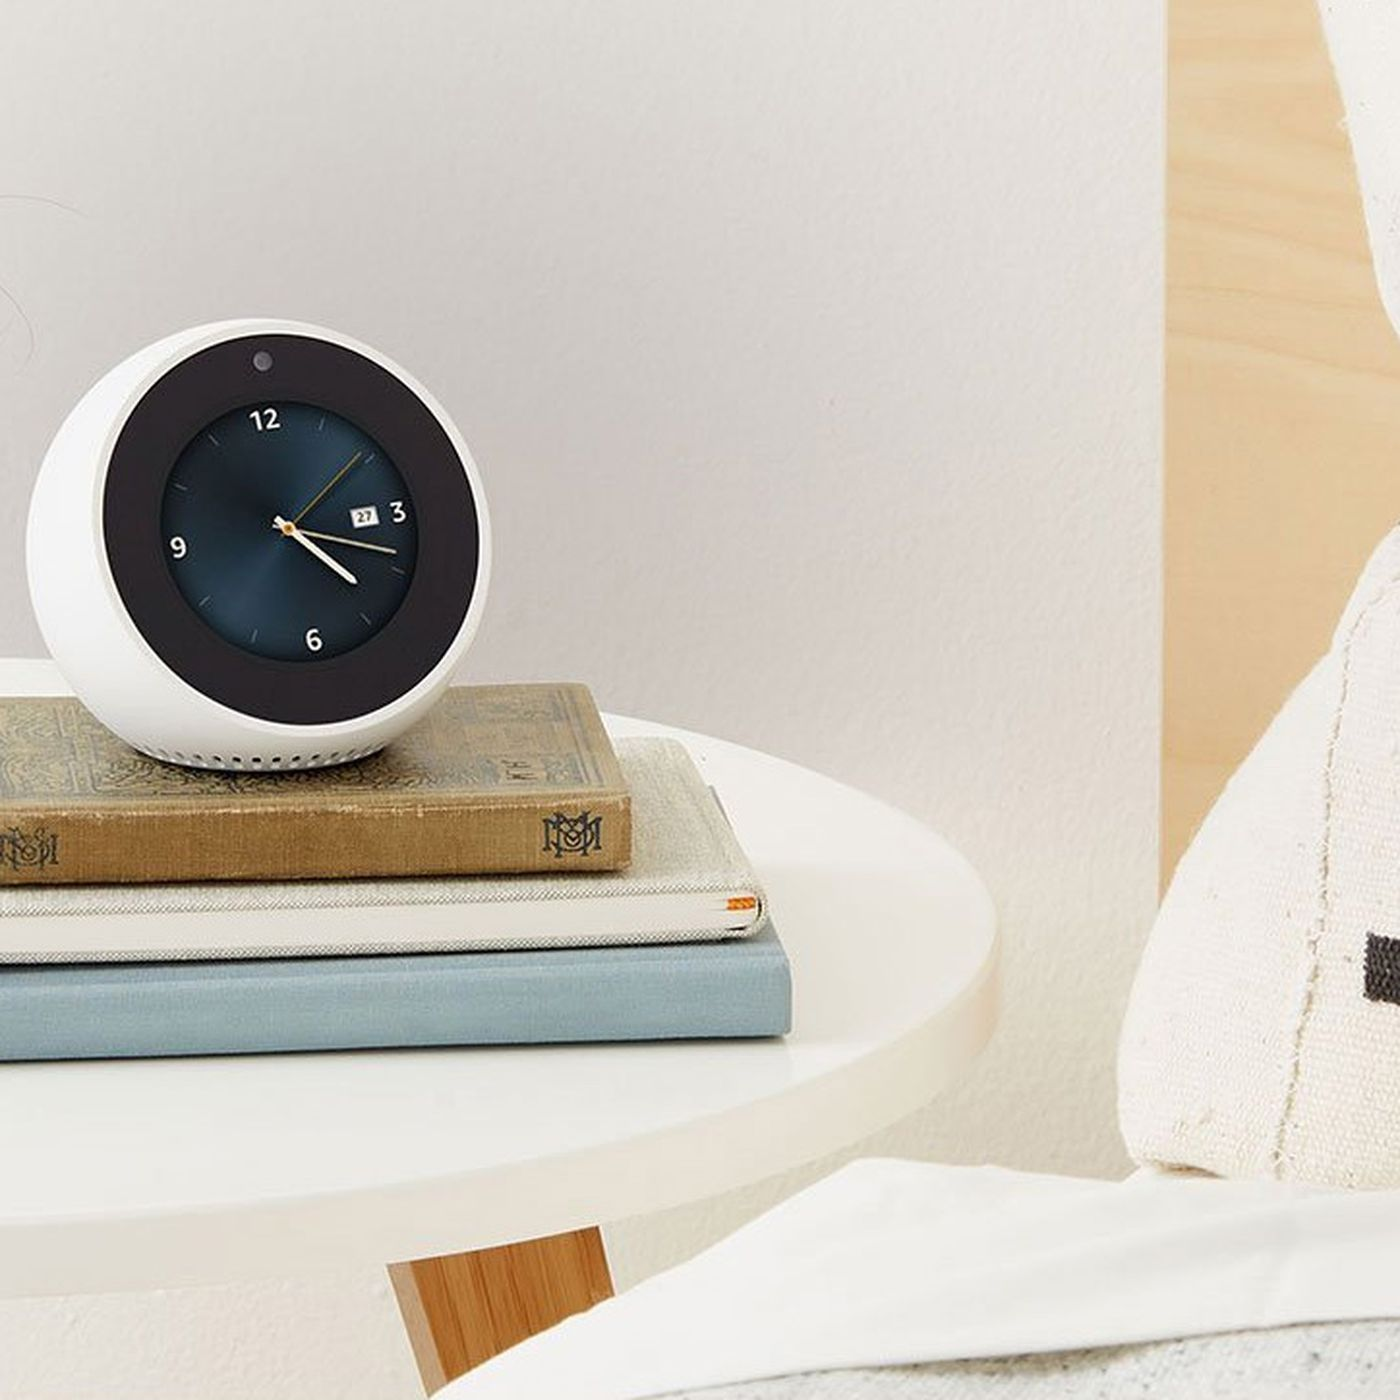 Amazons Echo Spot Is A Sneaky Way To Get Camera Into Your Bedroom How Build Bedside Lamp Timer Circuit Schematic The Verge